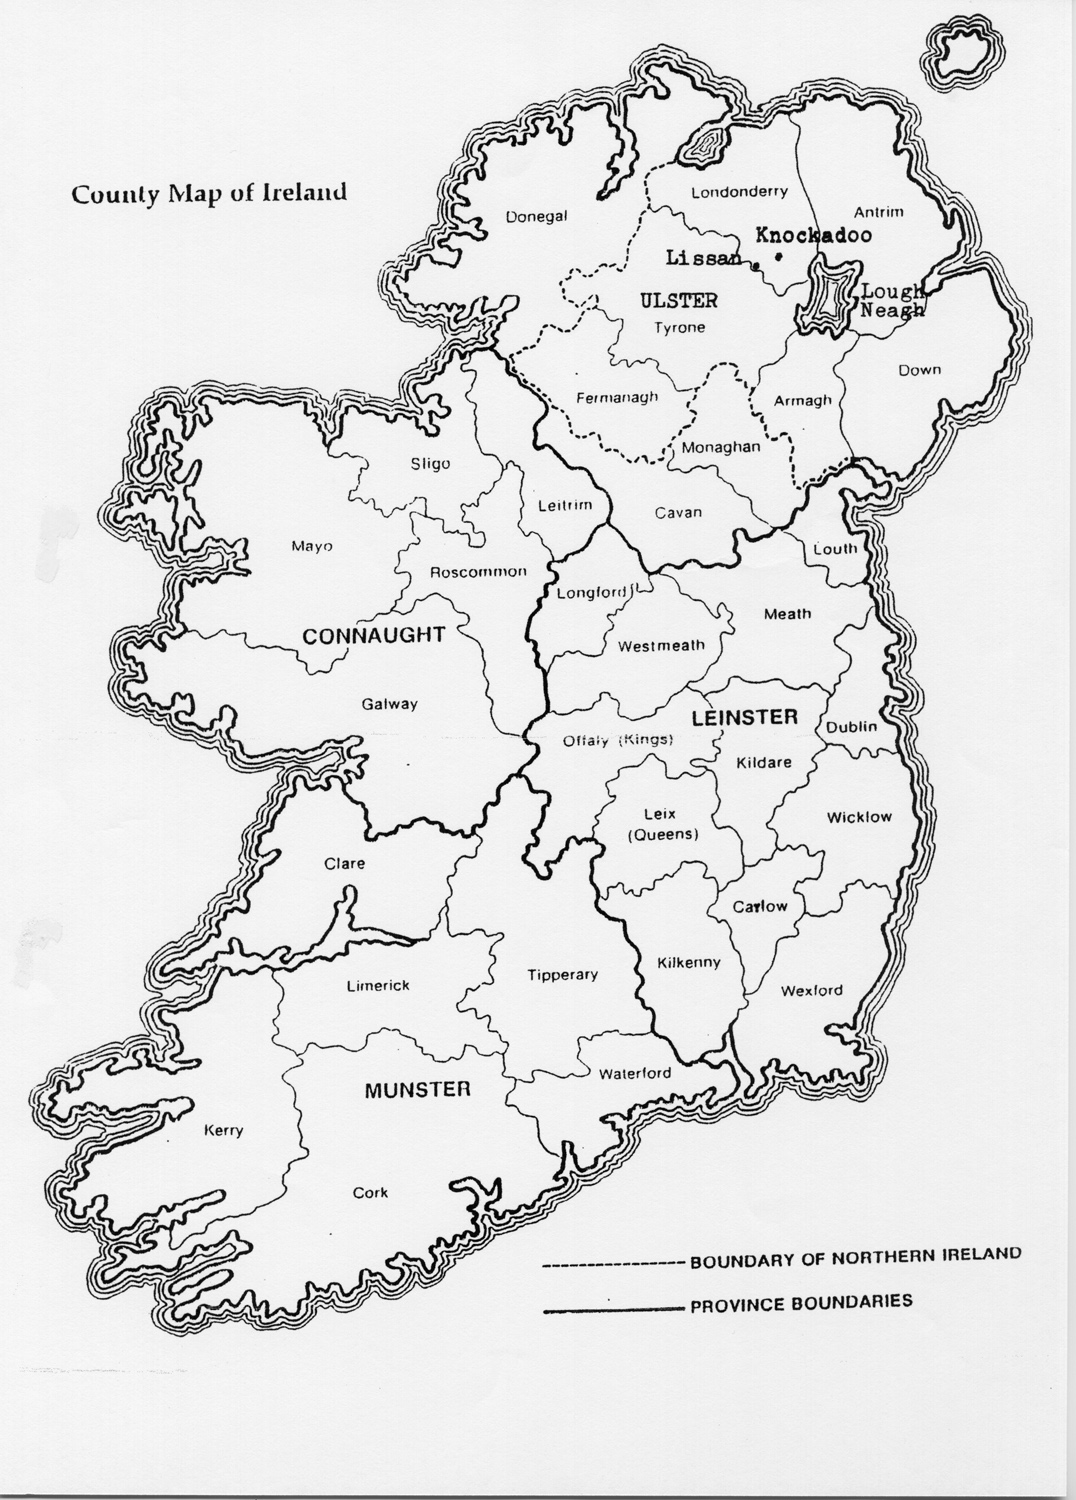 Map Of Northern Ireland Counties.Maps Reids Of Knockadoo County Londonderry Northern Ireland